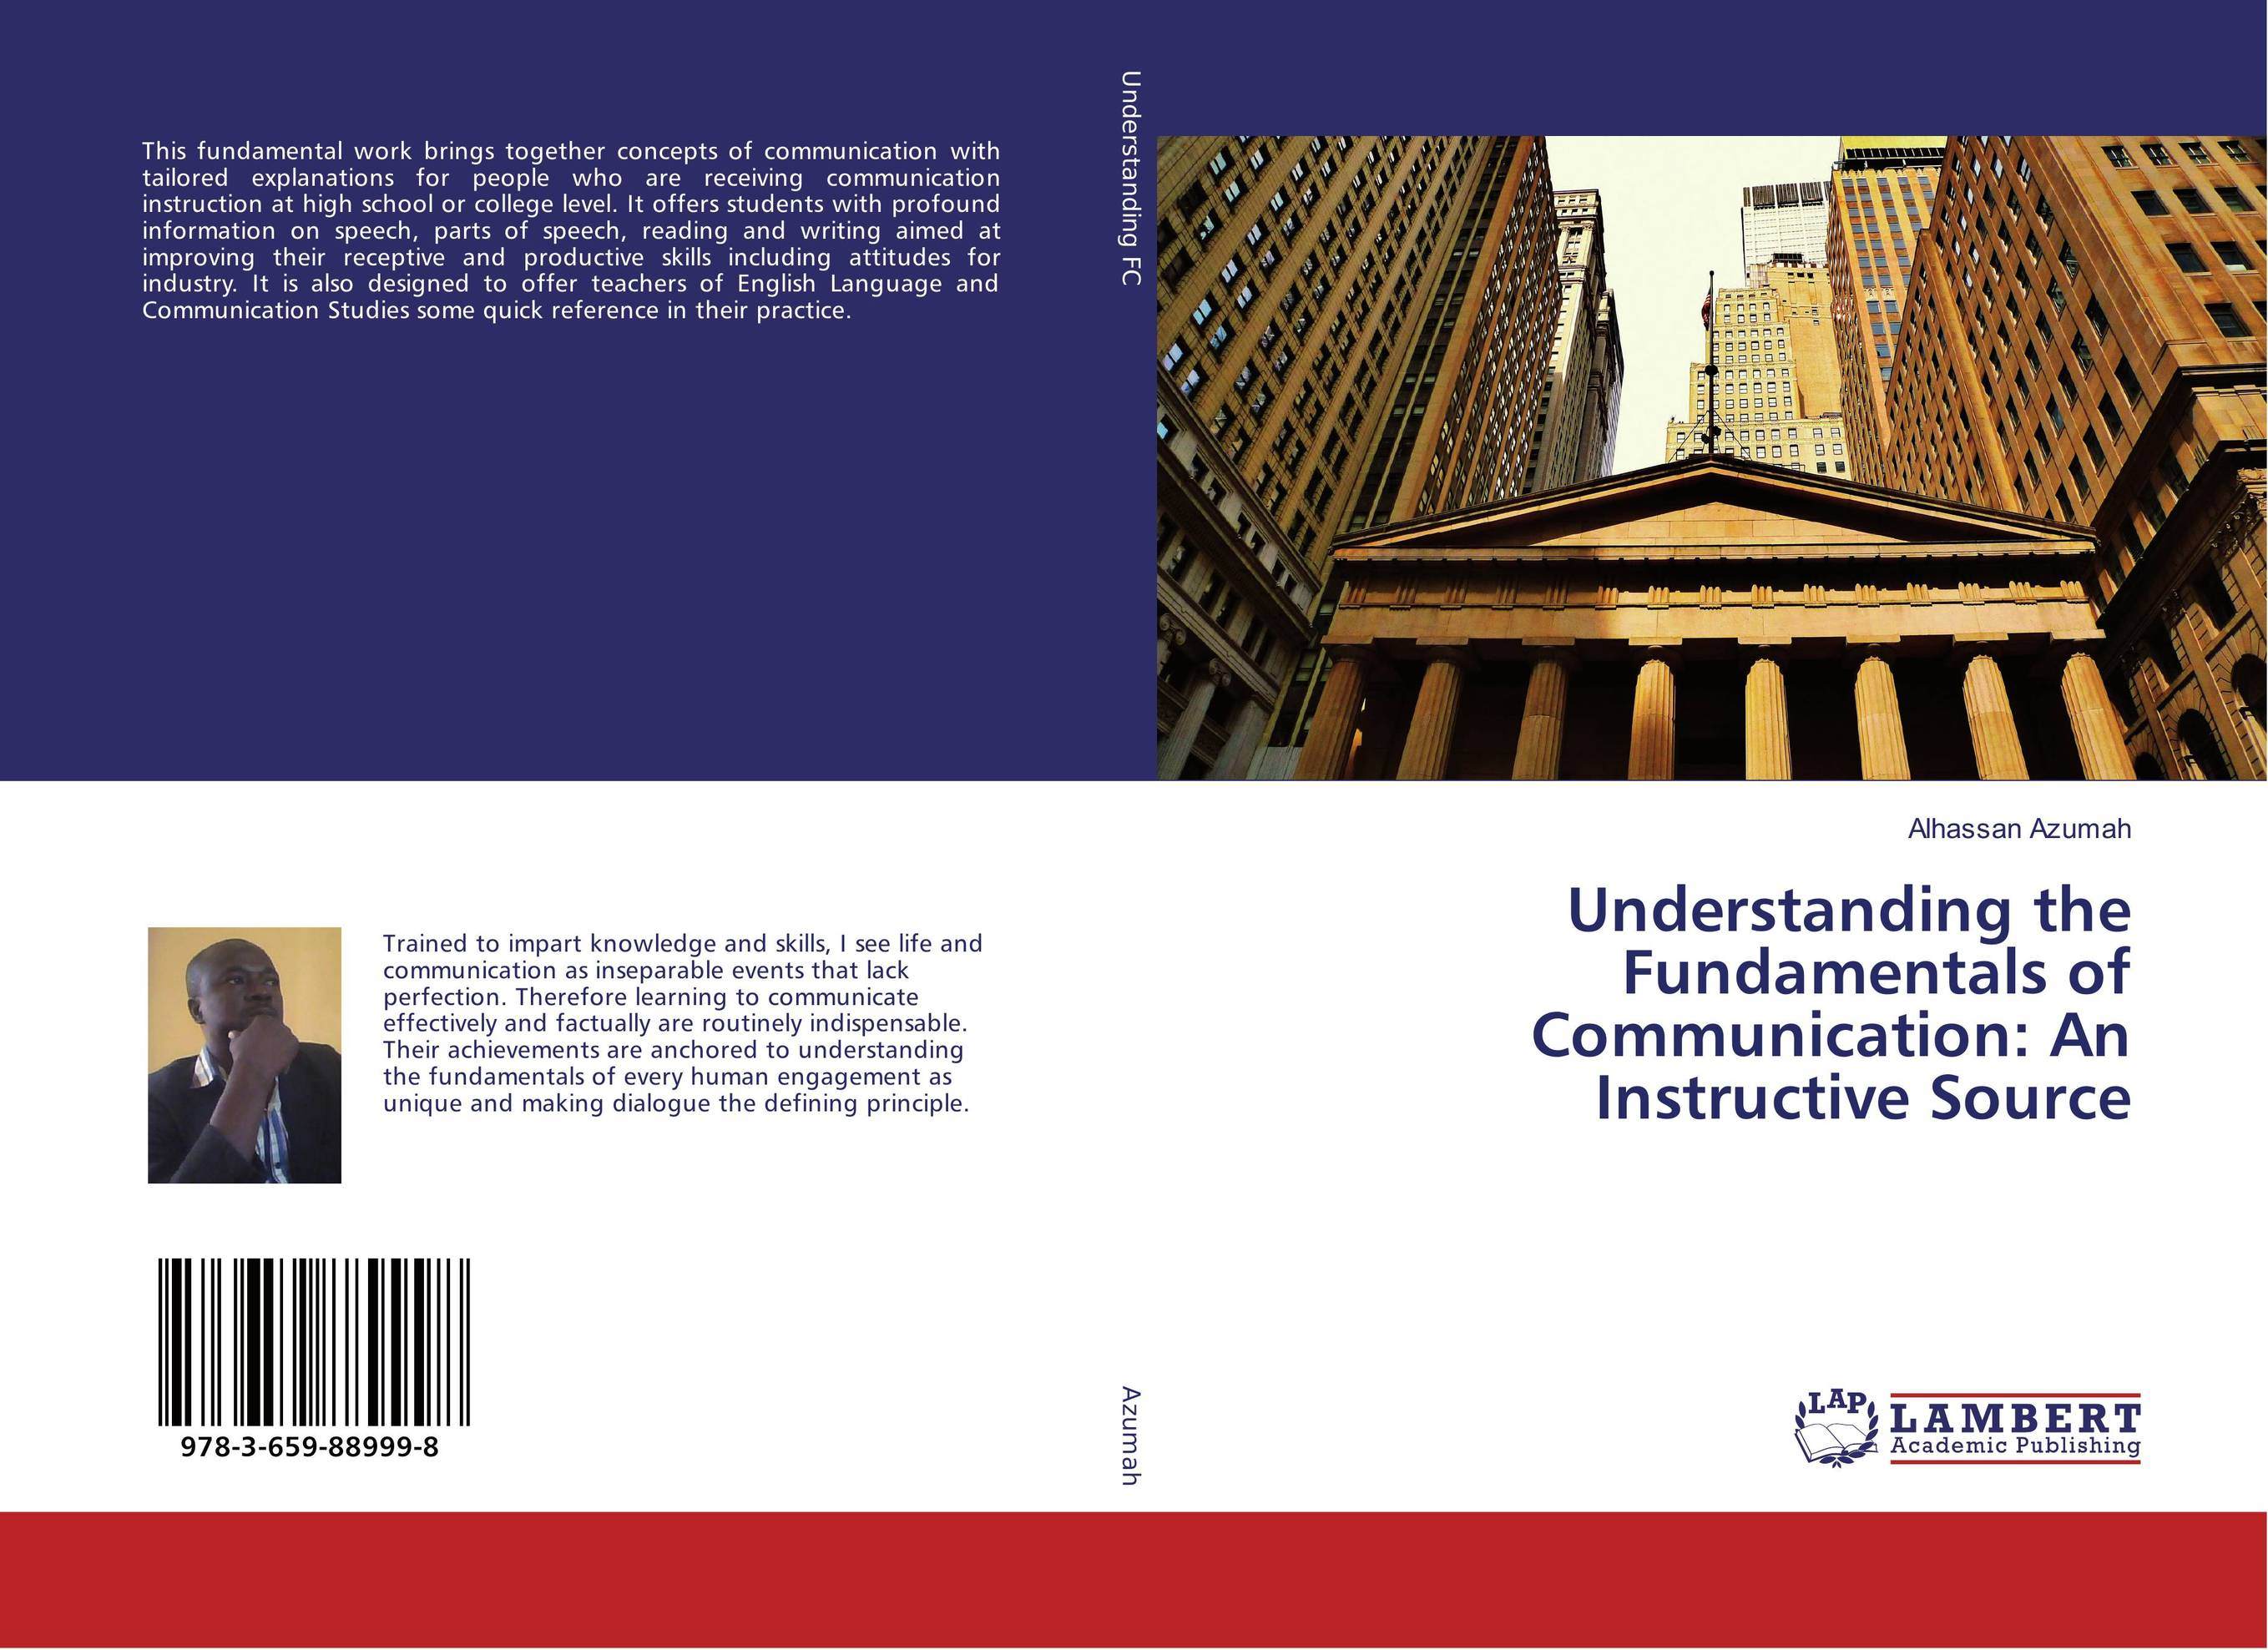 Understanding the Fundamentals of Communication: An Instructive Source